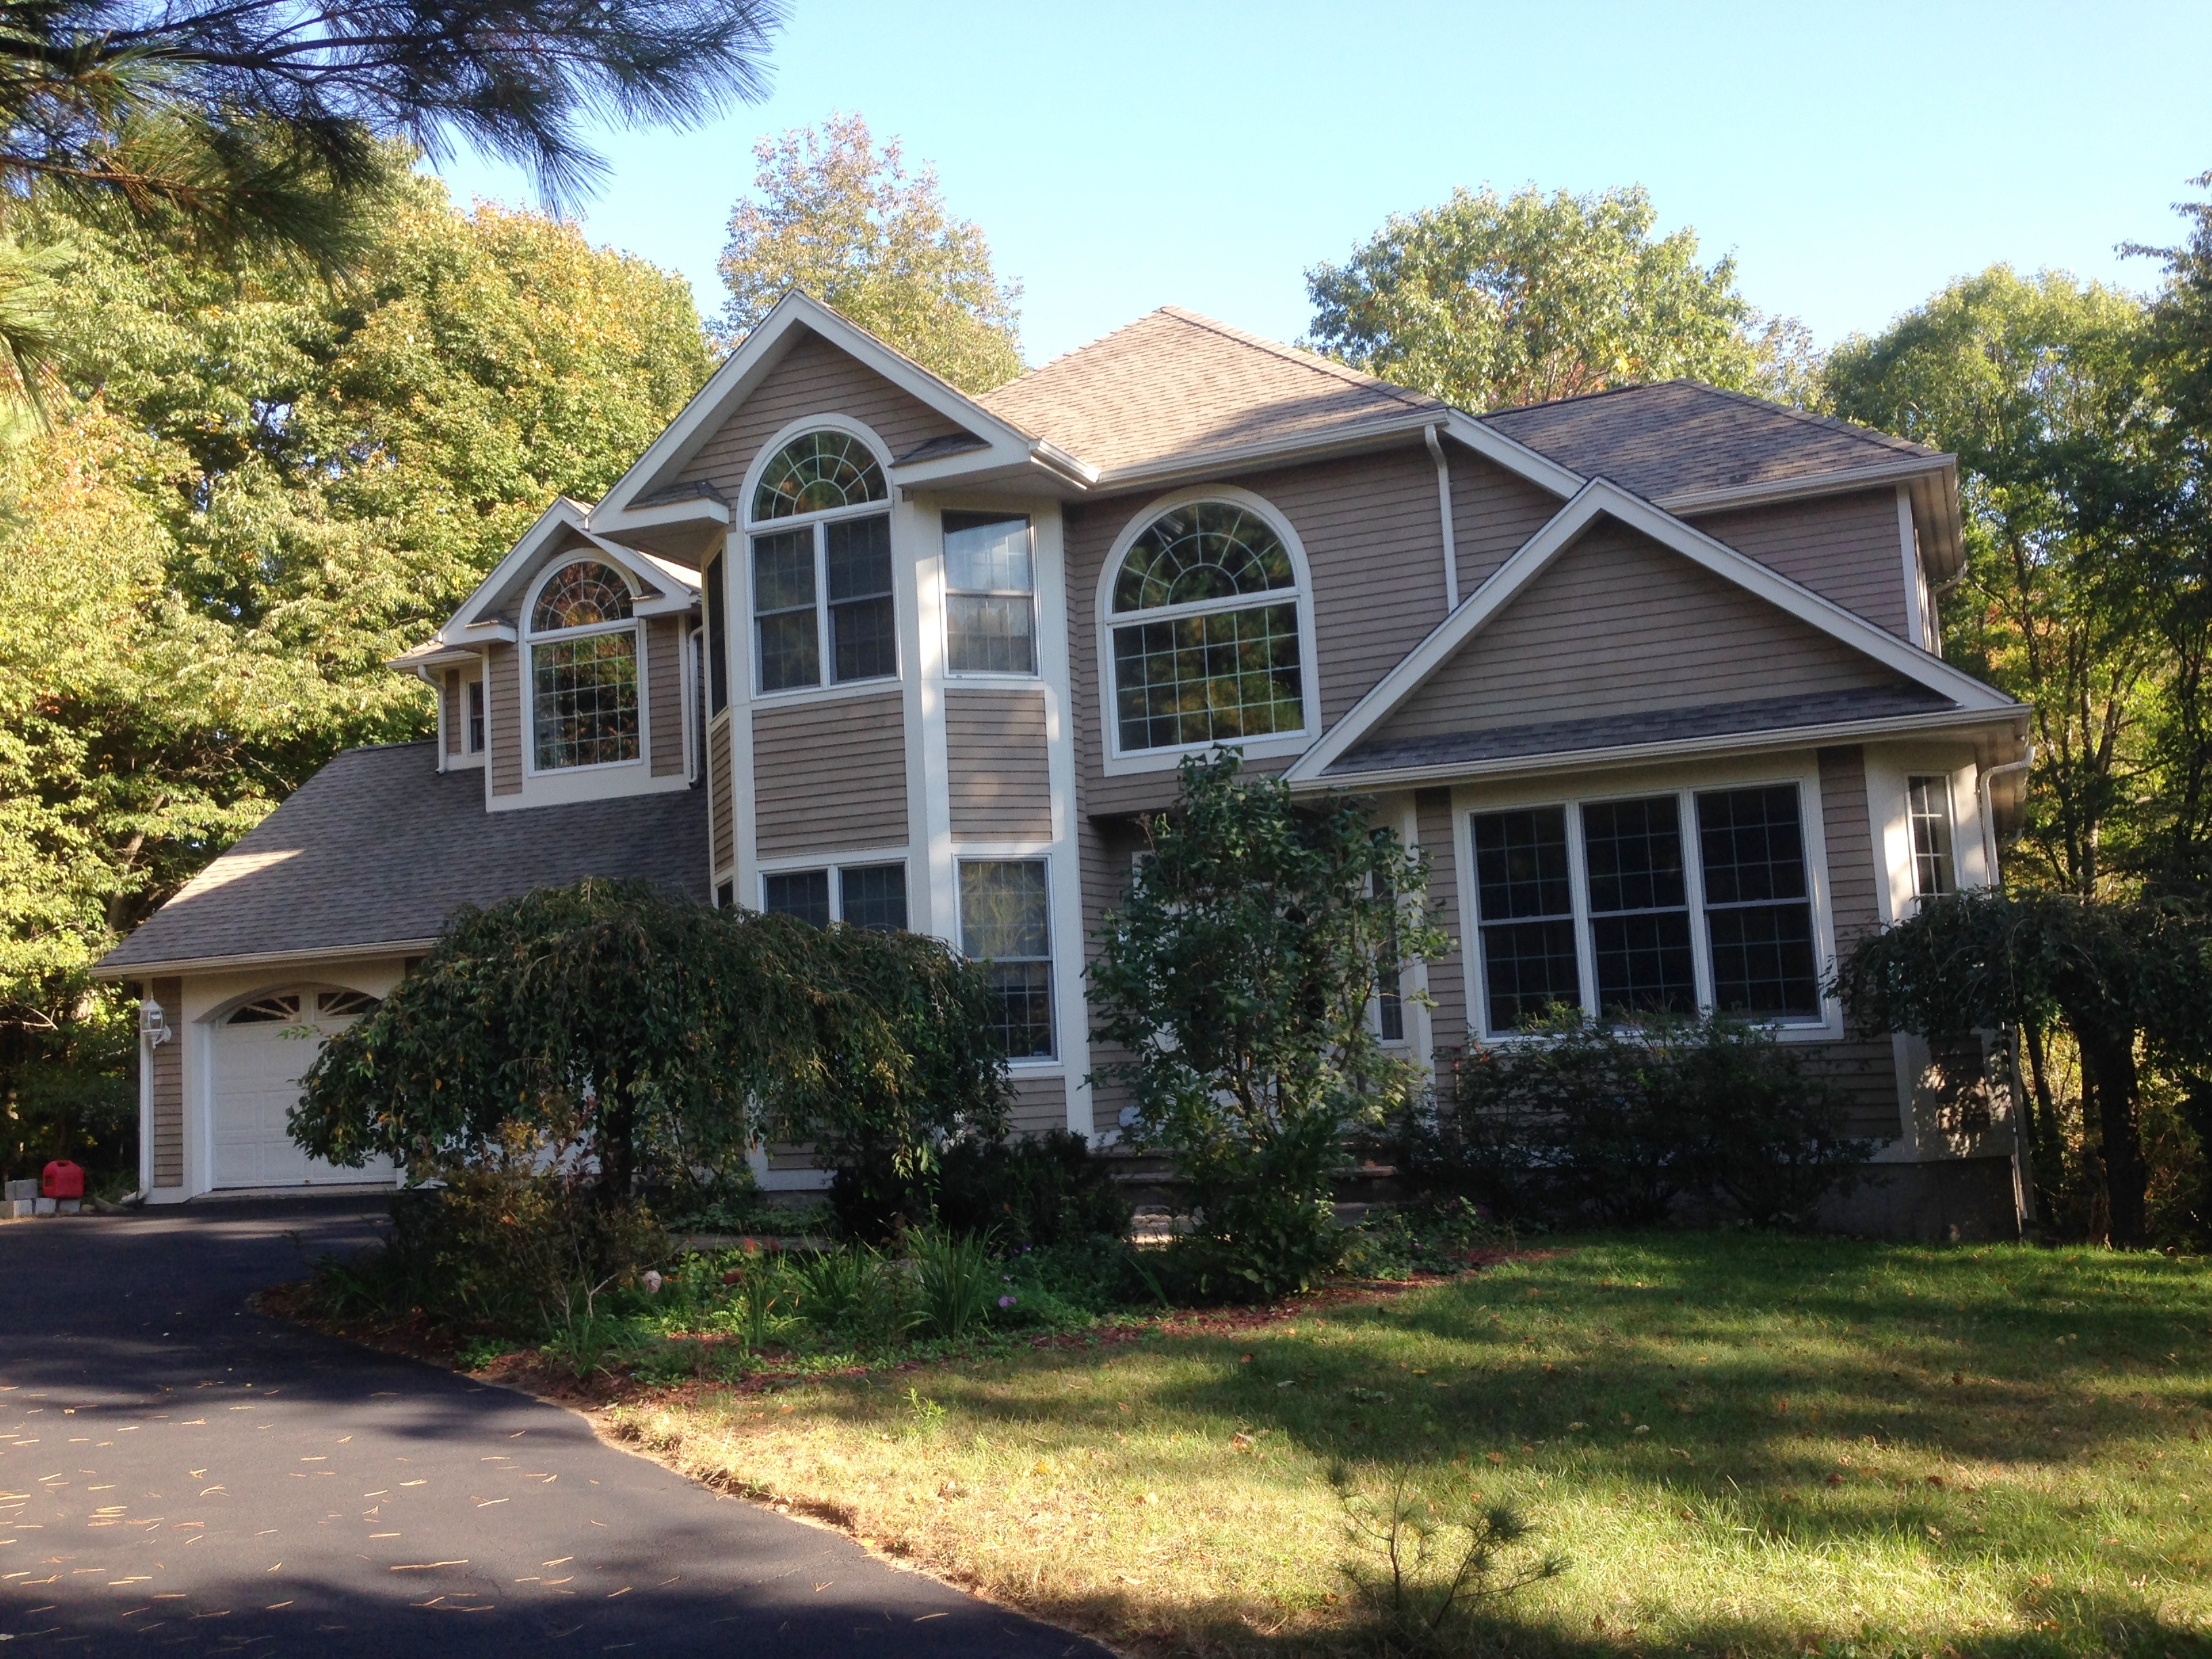 Single Family Home for Sale at Refined Woodridge Lake Home 145 Bentley Cir Goshen, Connecticut, 06756 United States